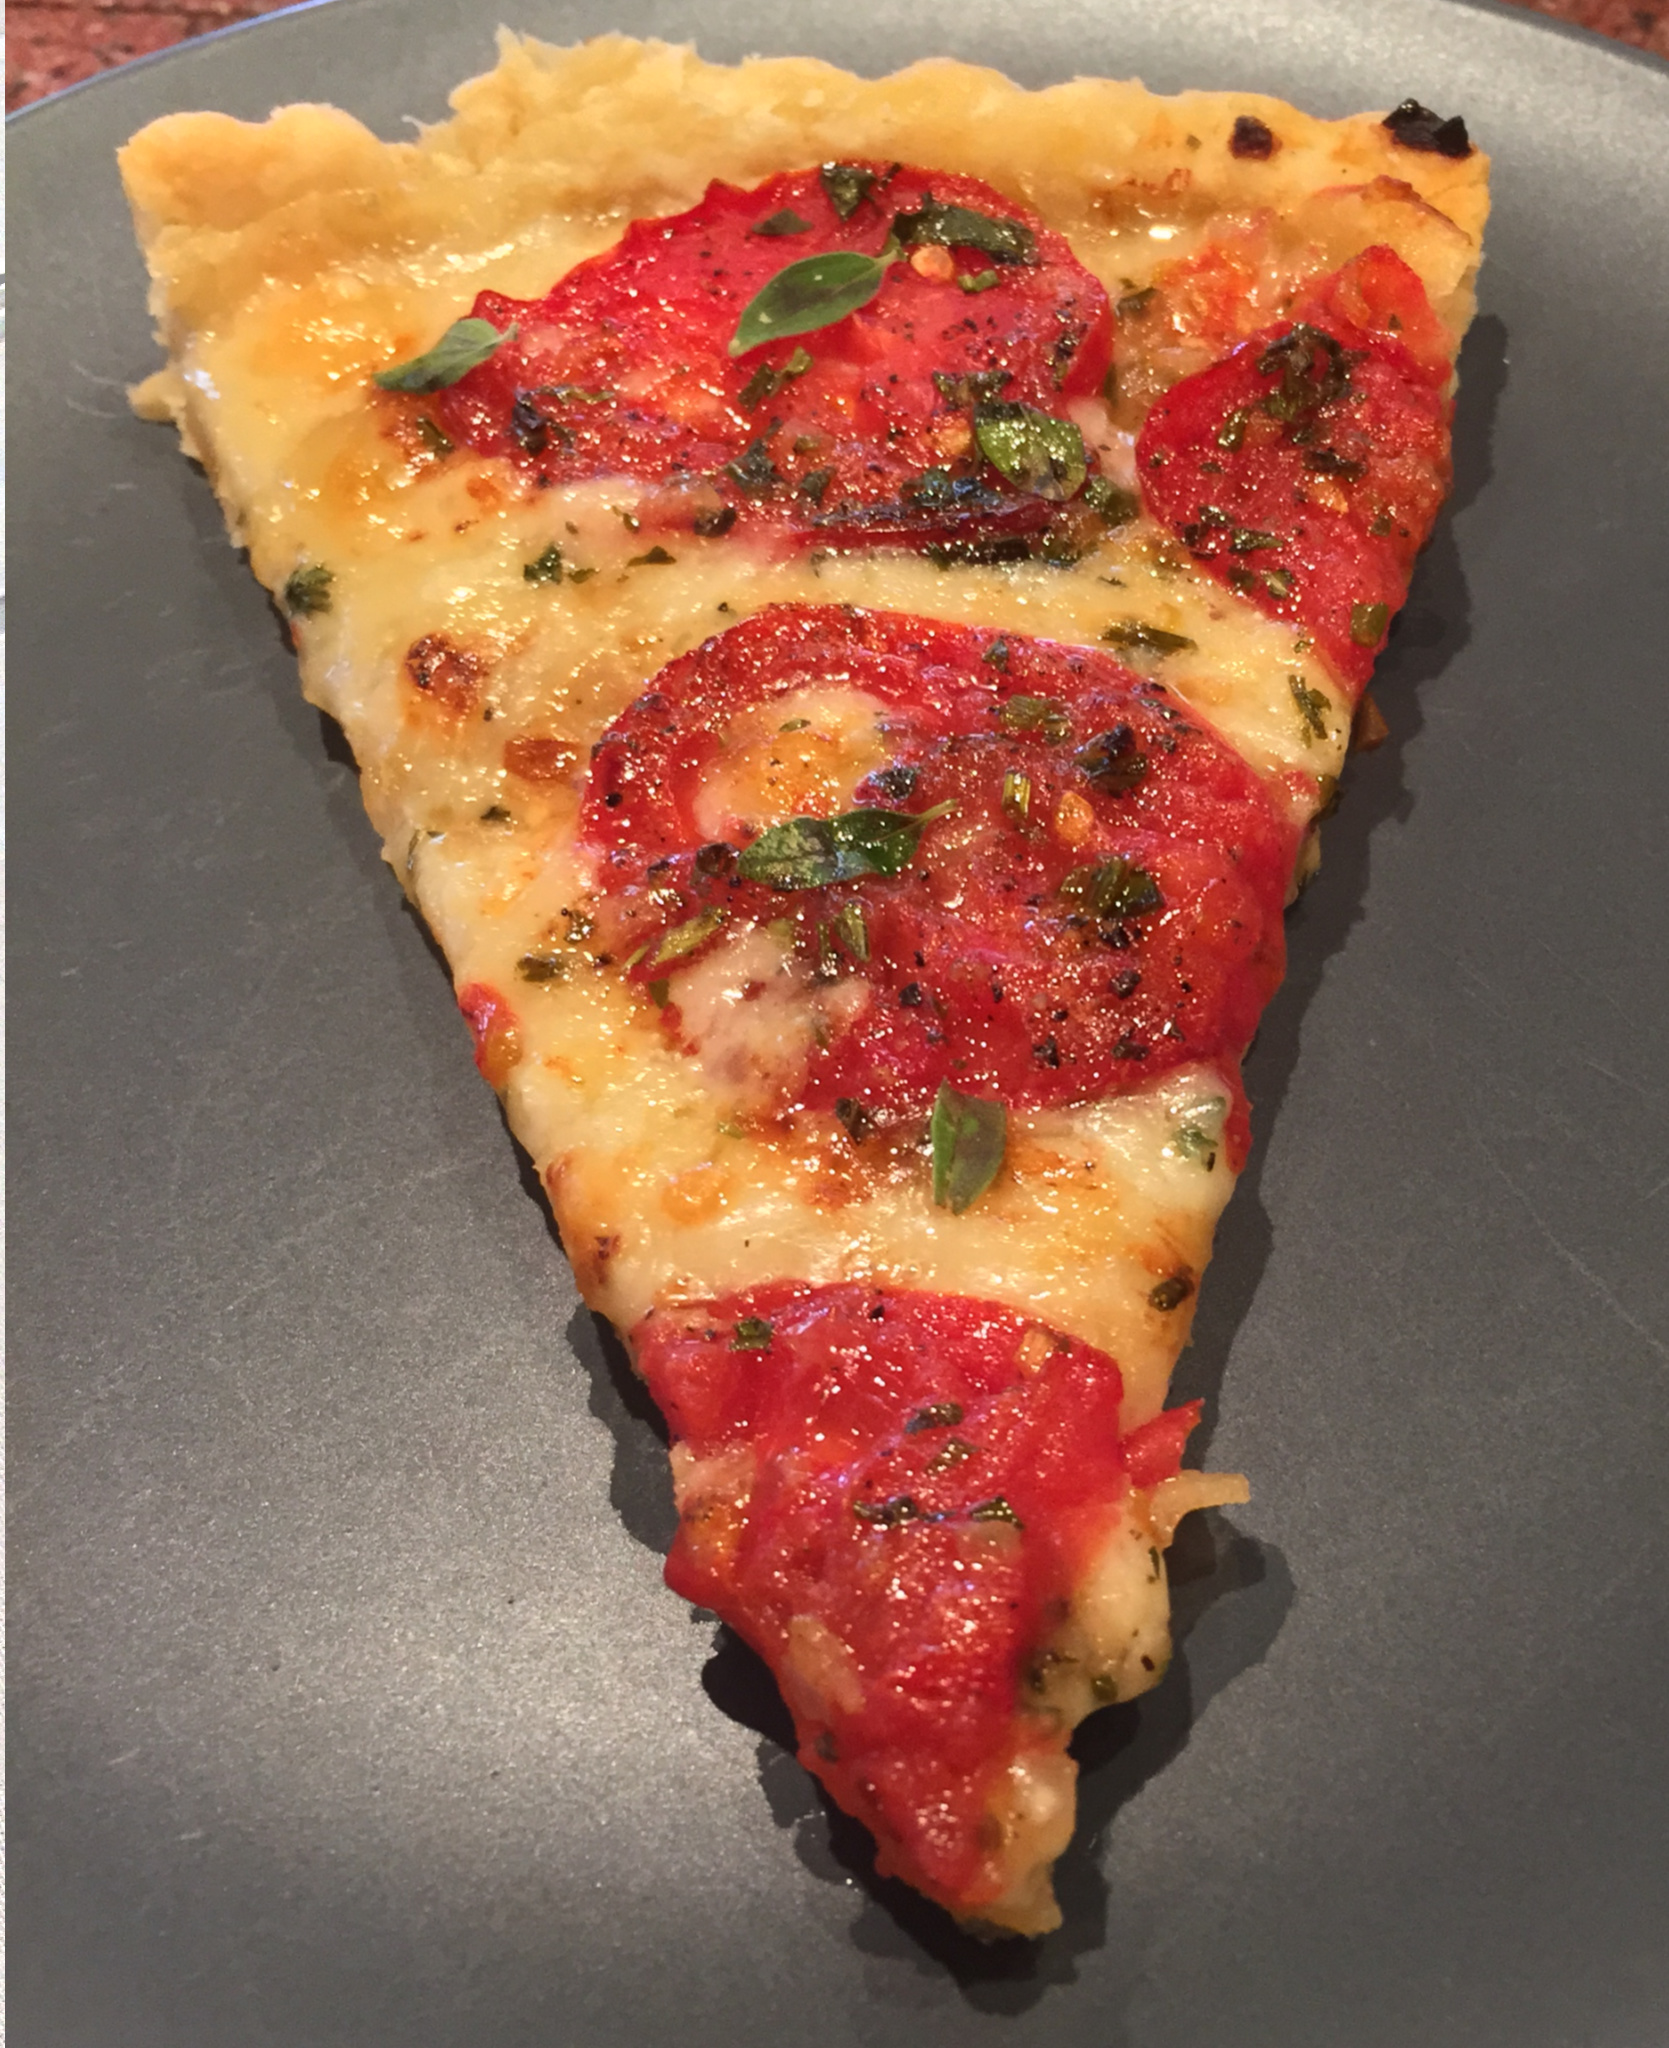 French Tomato and Cheese Tart with Fresh Herbs